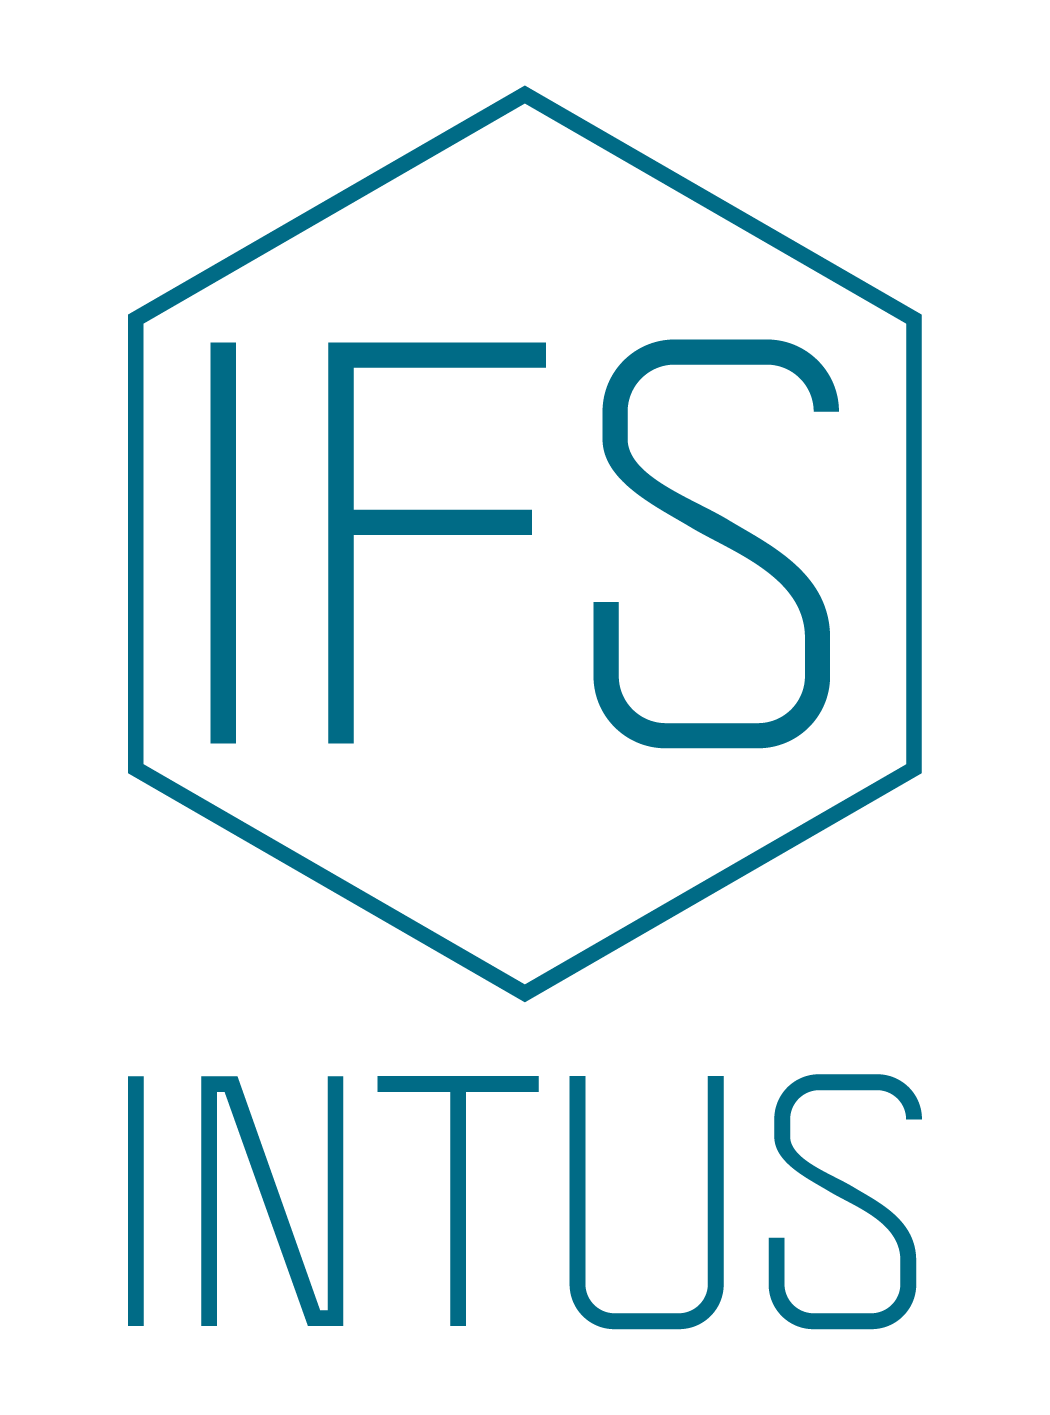 Intus Financial Services Oy Ltd